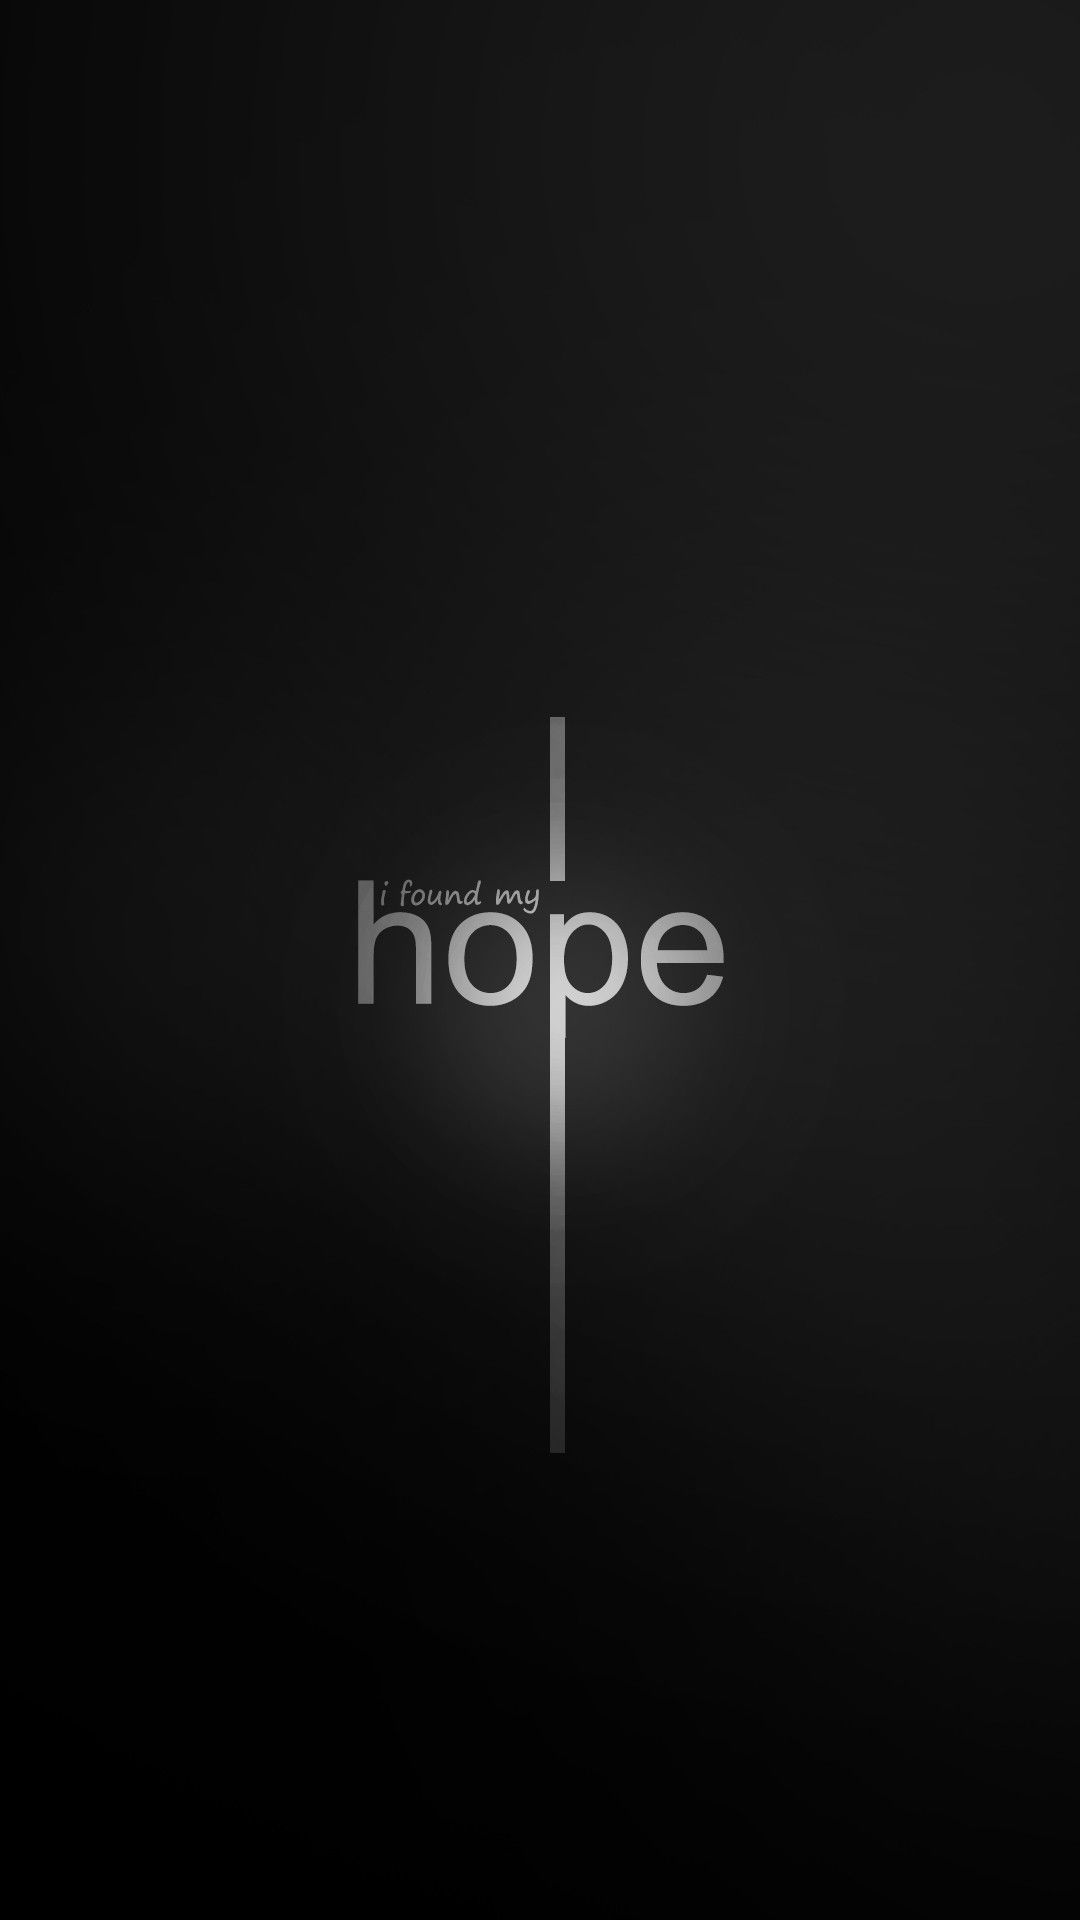 Christian Hope Jesus Holy Spirit Wallpaper Quotes